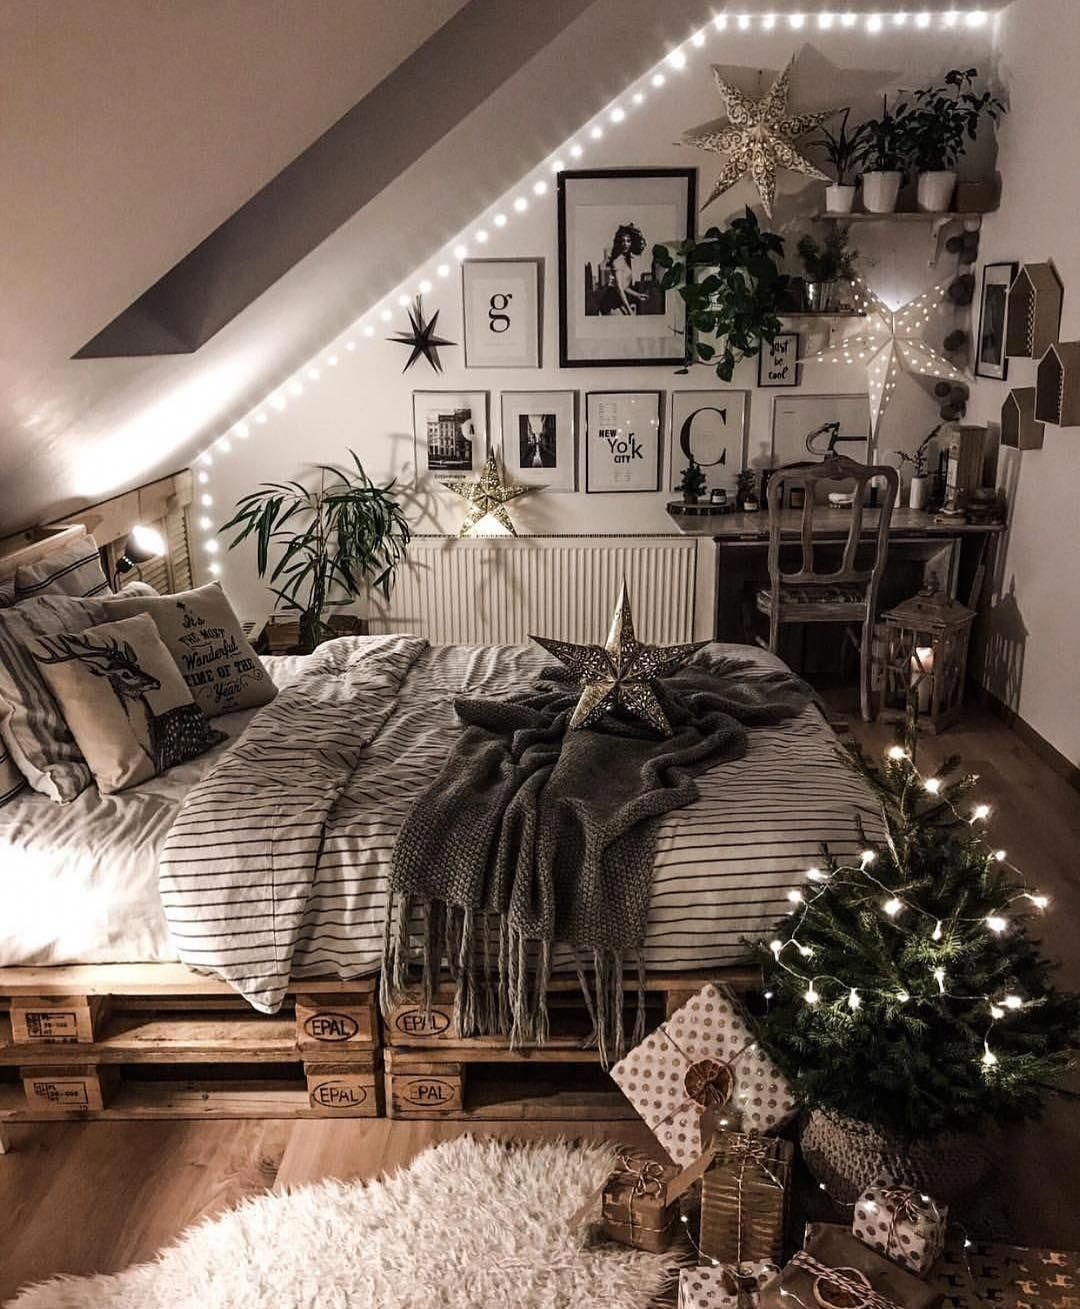 Waa Christmas 2020 bedroom ideas;christmas decor ideas;christmas decor ideas diy